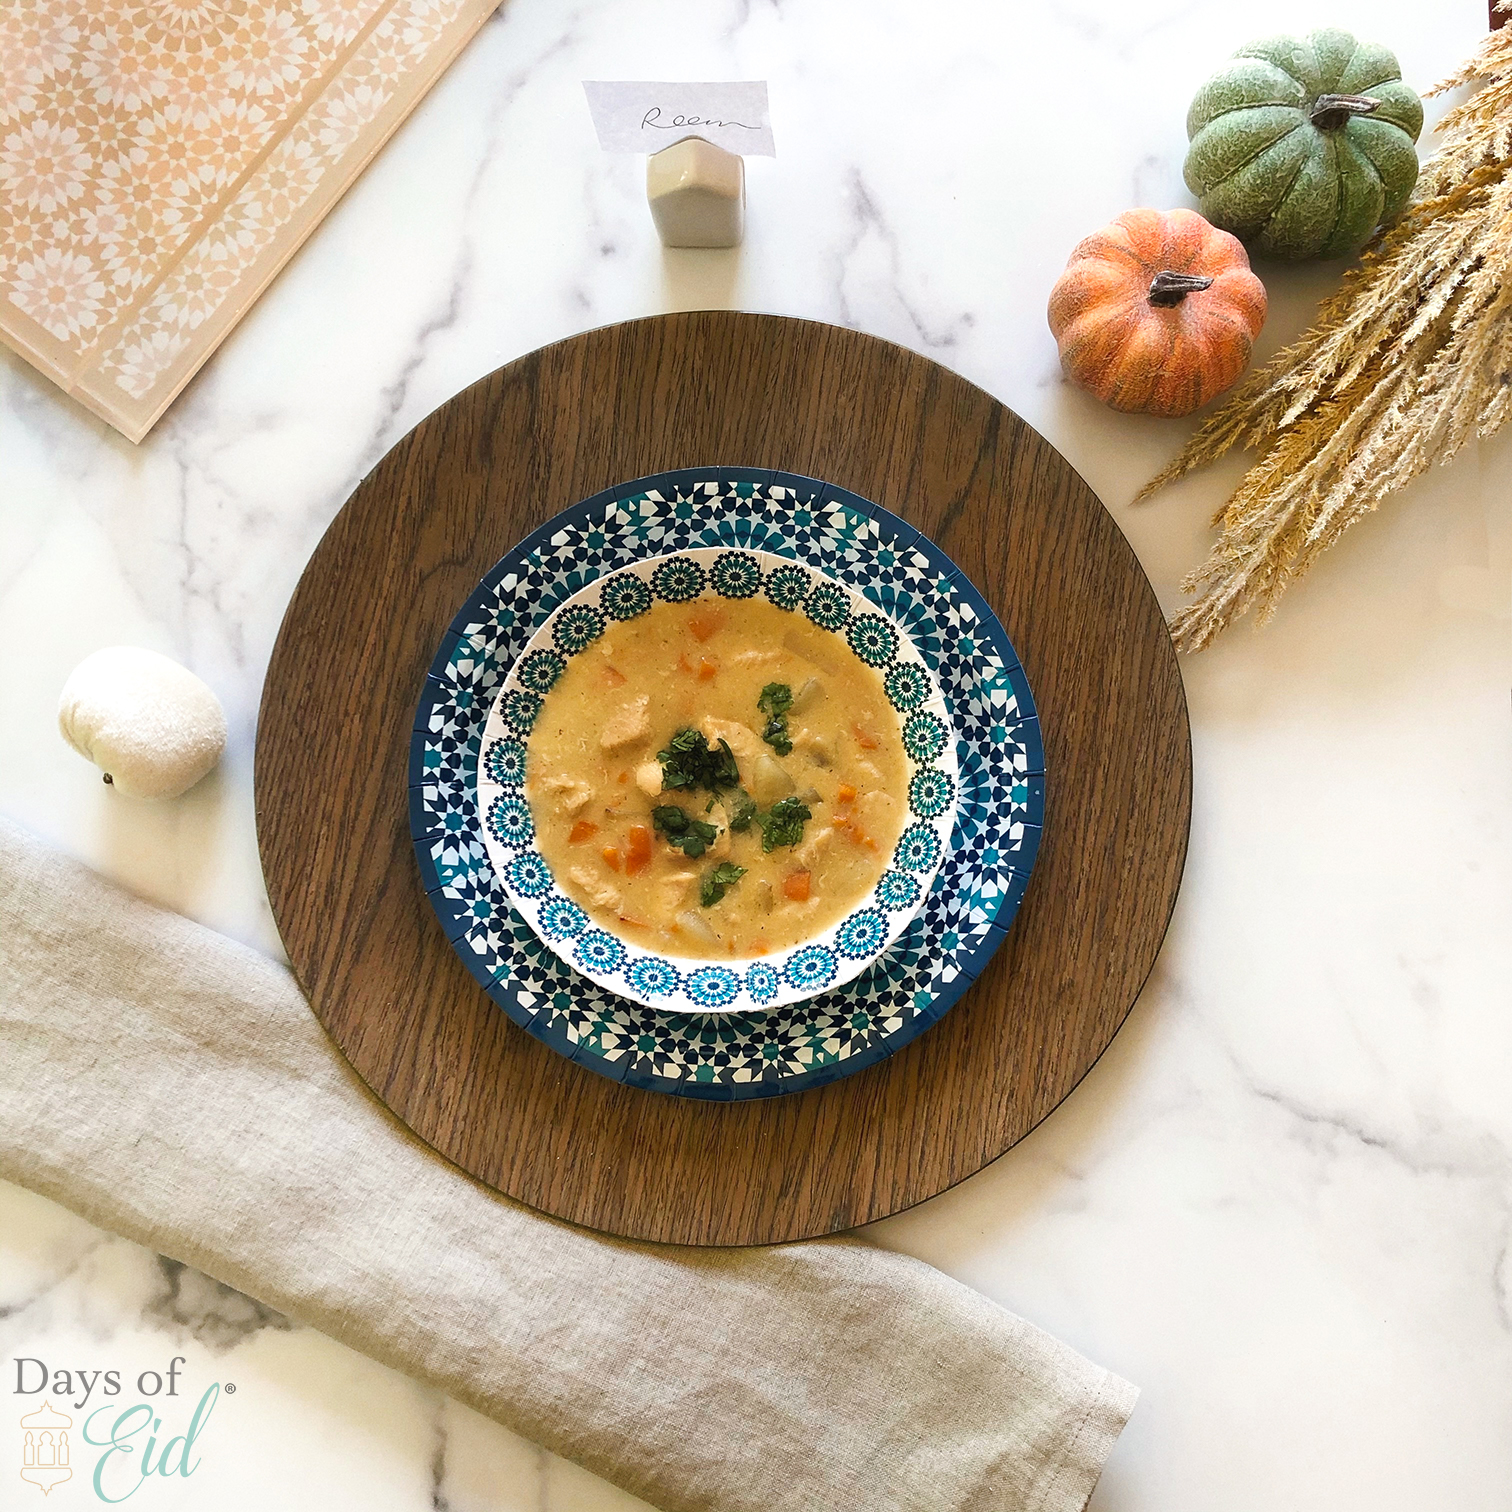 Bowl of soup plated next to linen napkin and pumpkins